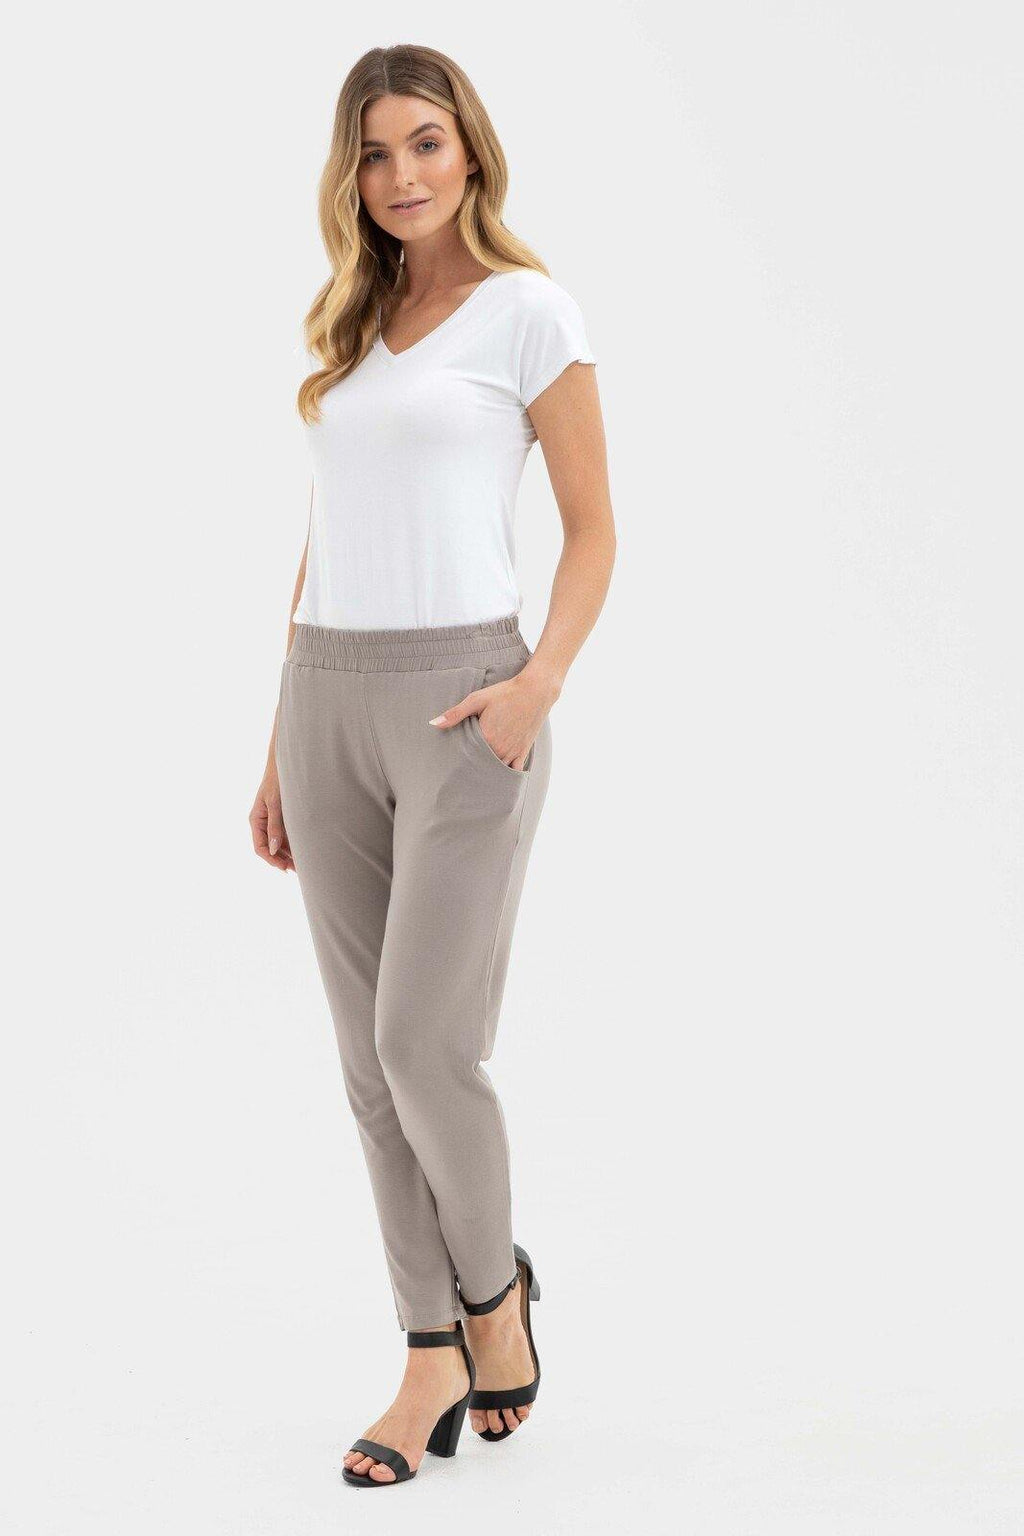 Bamboo Body Peggy Trousers - Stone | Buy Online at Weekends